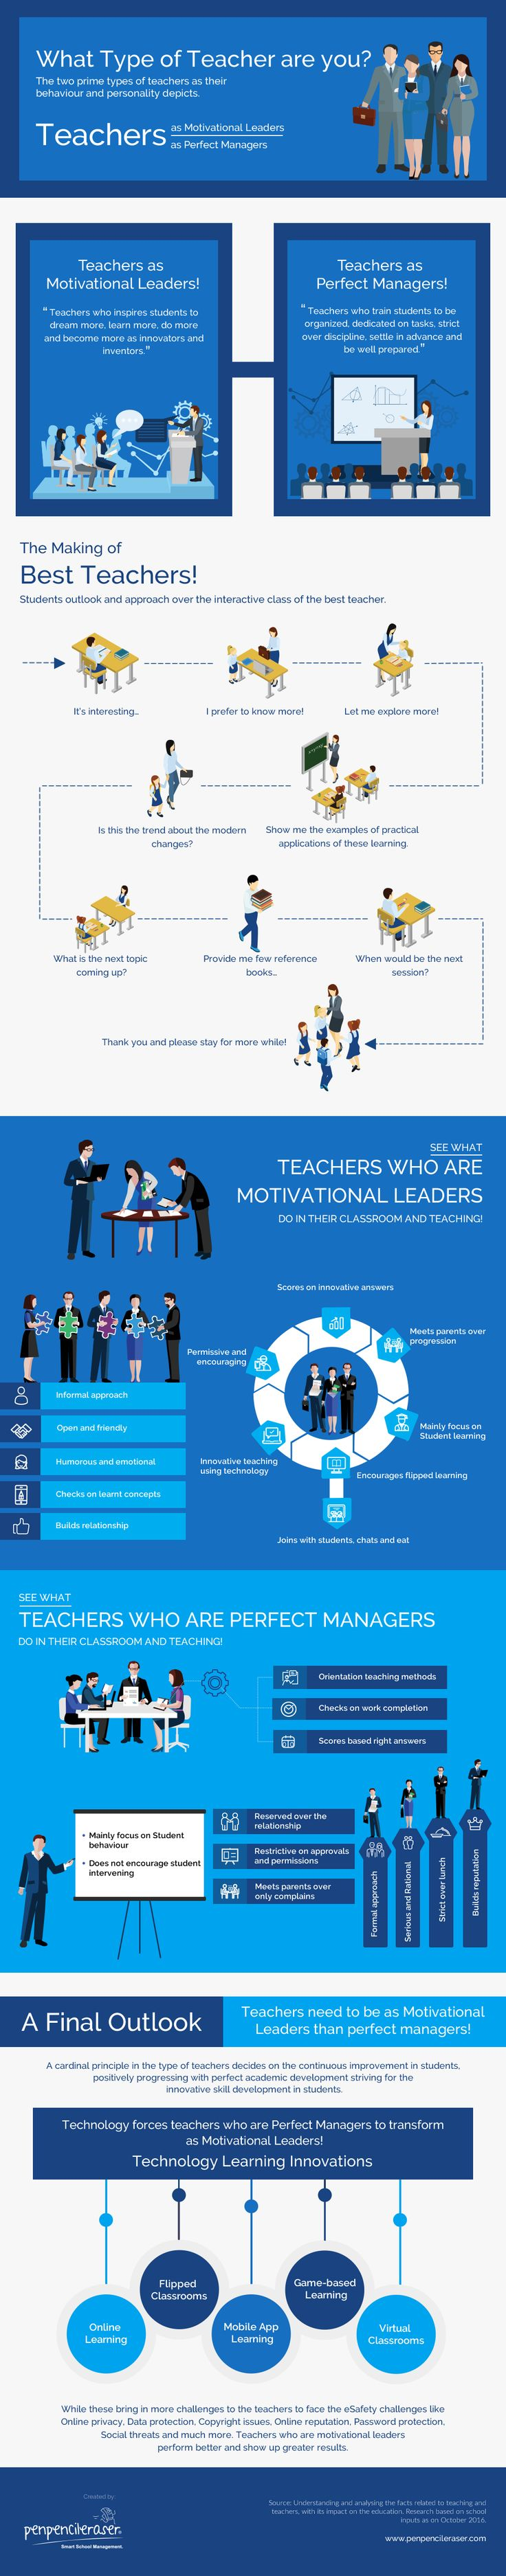 What Type of Teacher Are You? #Infographic #Education